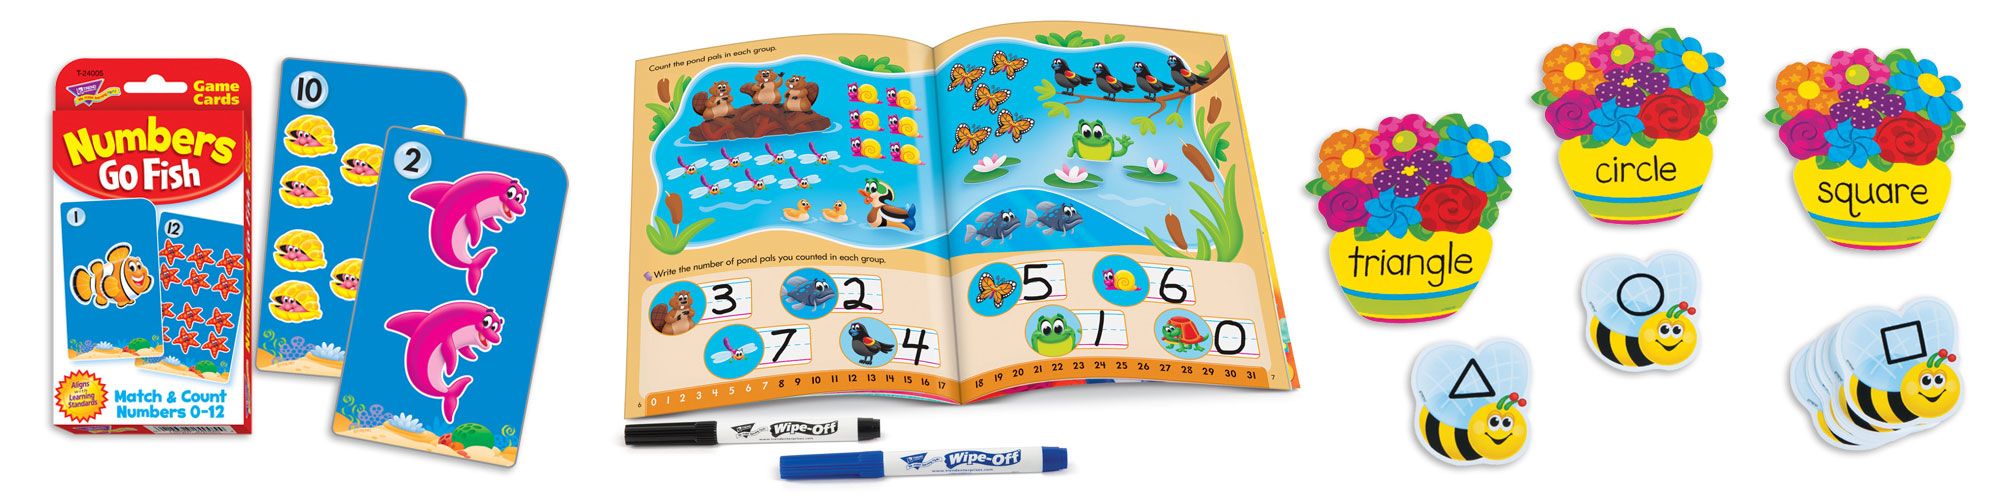 Products for kindergarten math skills practice